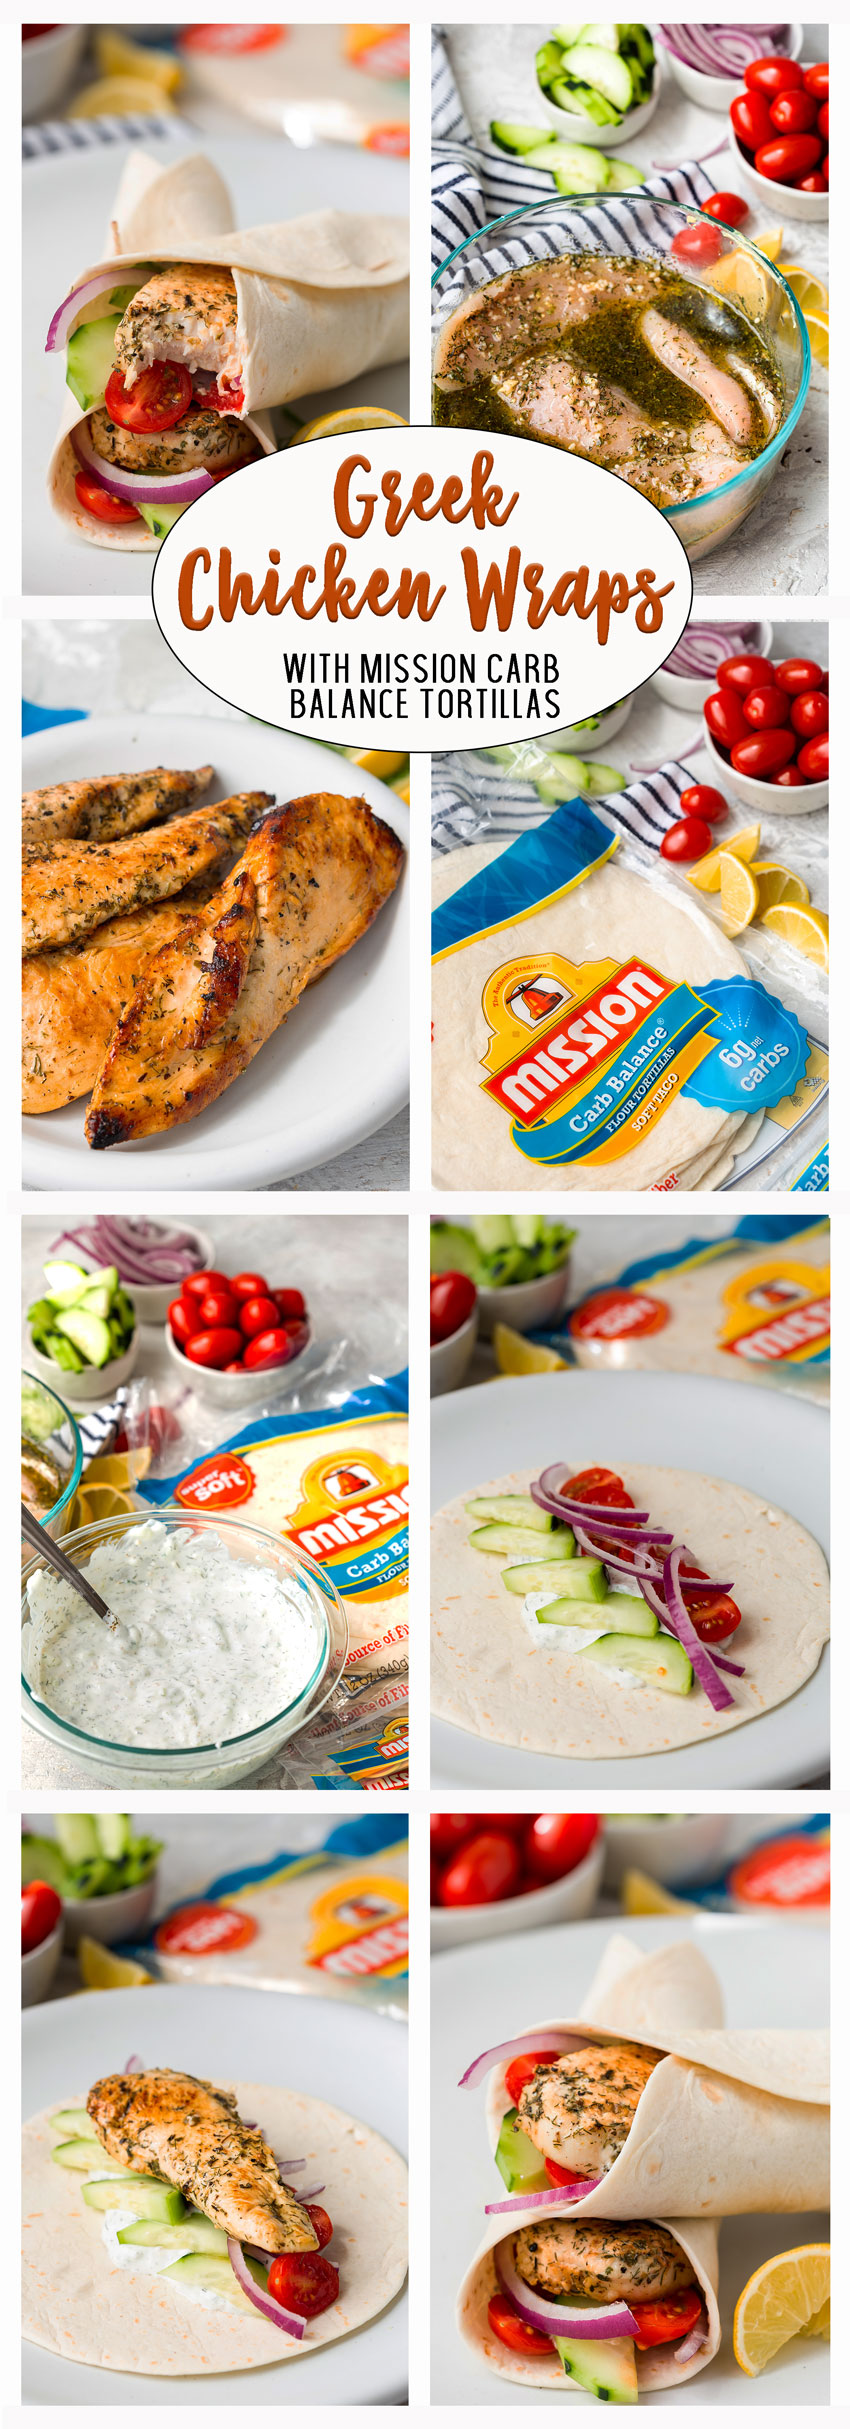 Greek Chicken Wraps: Deliciously marinated greek chicken, with tzatziki, cucumbers, tomatoes, onions, and cucumbers in a carb balanced tortilla